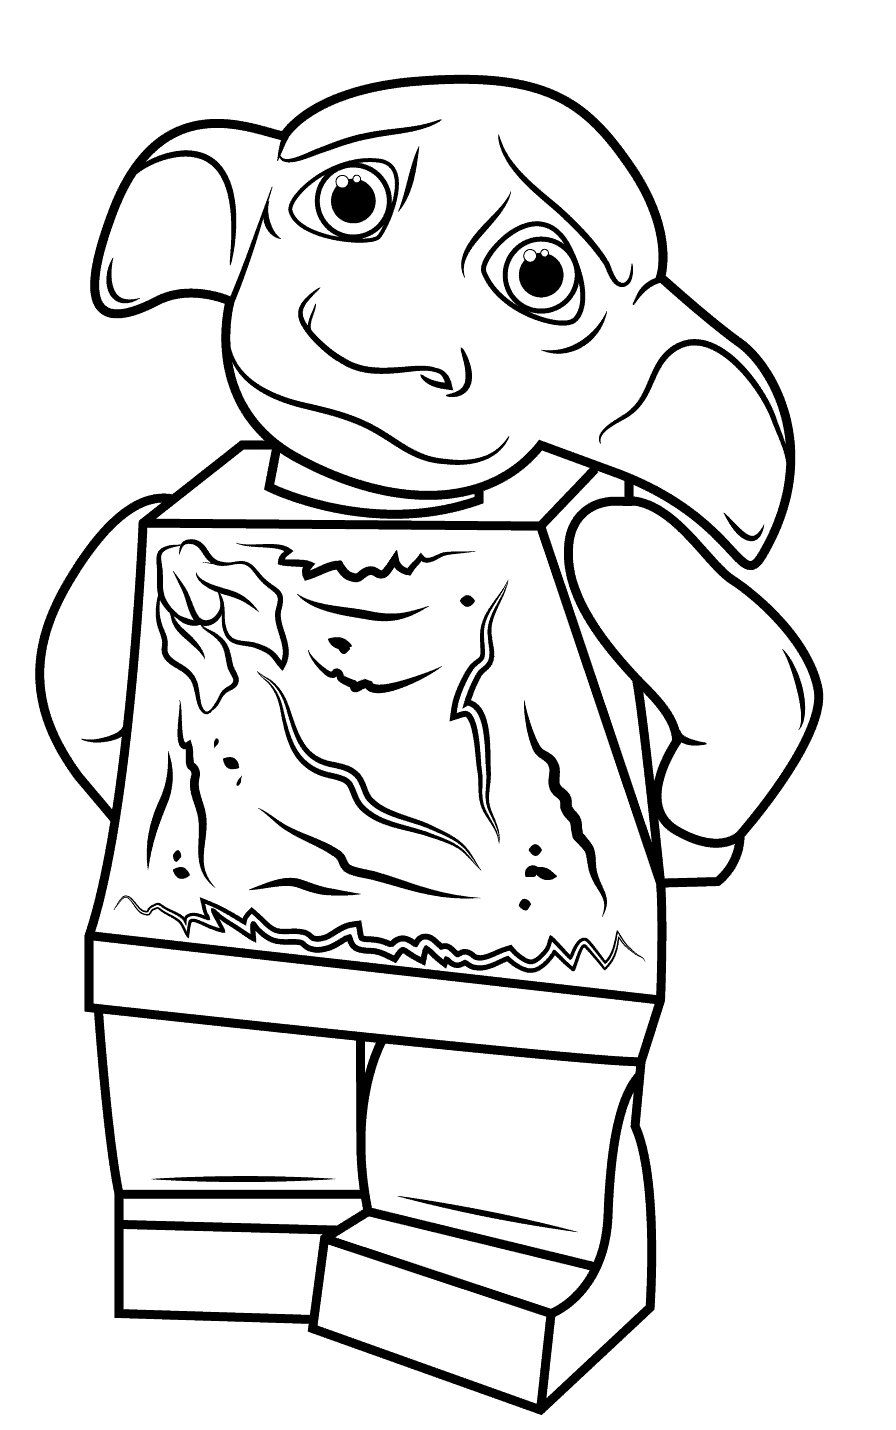 You Are Welcome To Printable Full Resolution Coloring Pages Most Of People Have Experienced Harry Potter Coloring Pages Harry Potter Colors Dobby Harry Potter